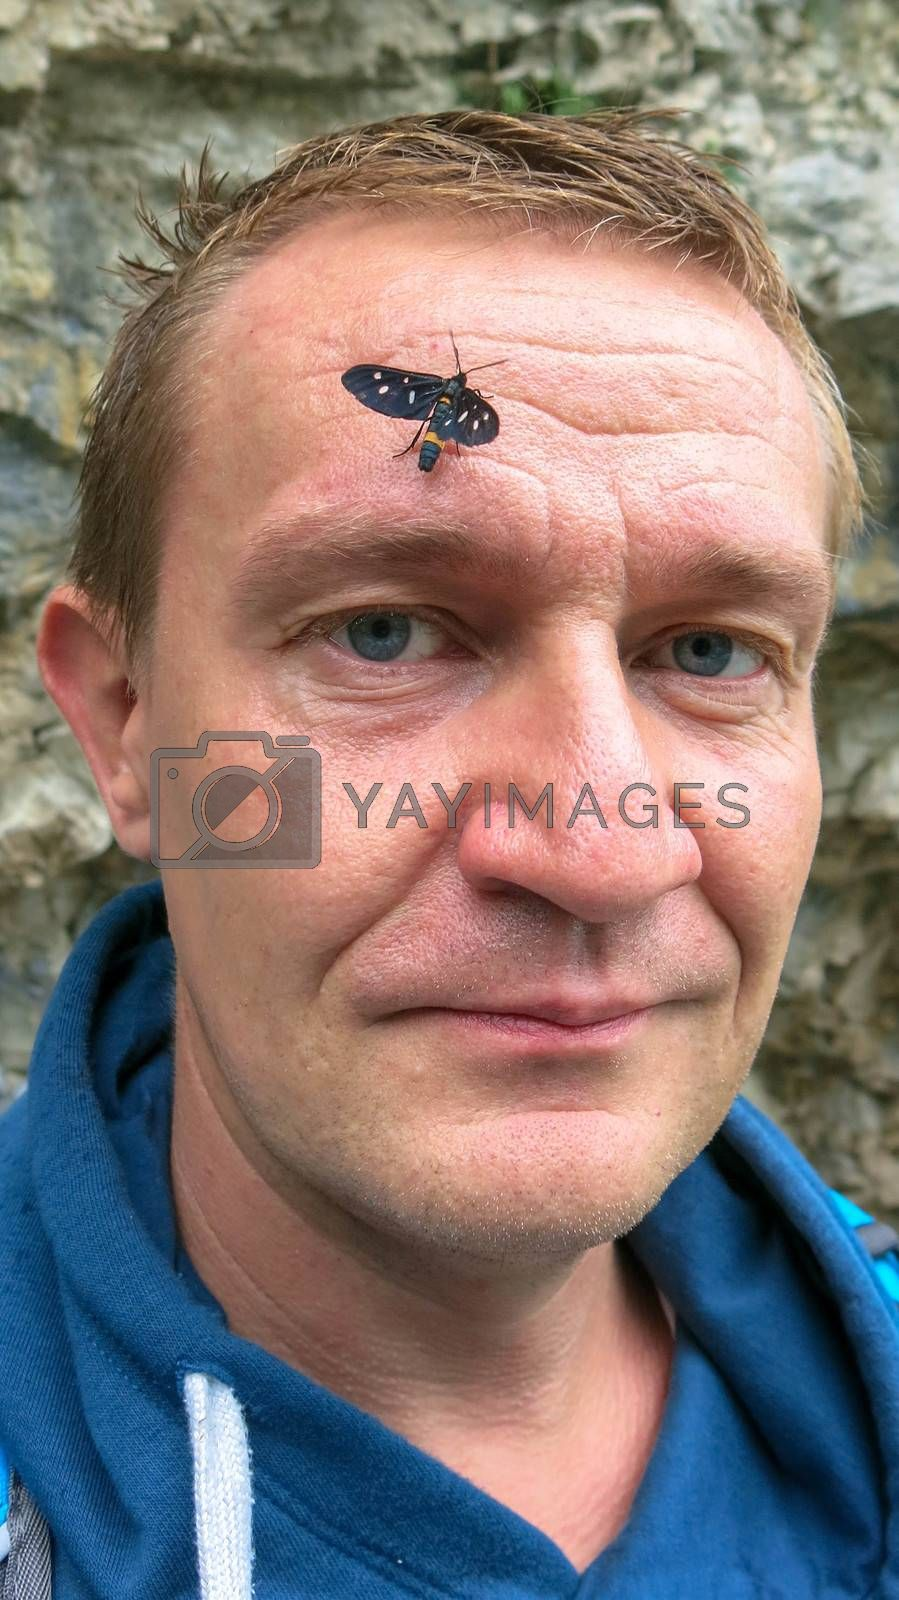 Black butterfly with white dots on the wings on the forehead of a man. Man with a butterfly on his head.